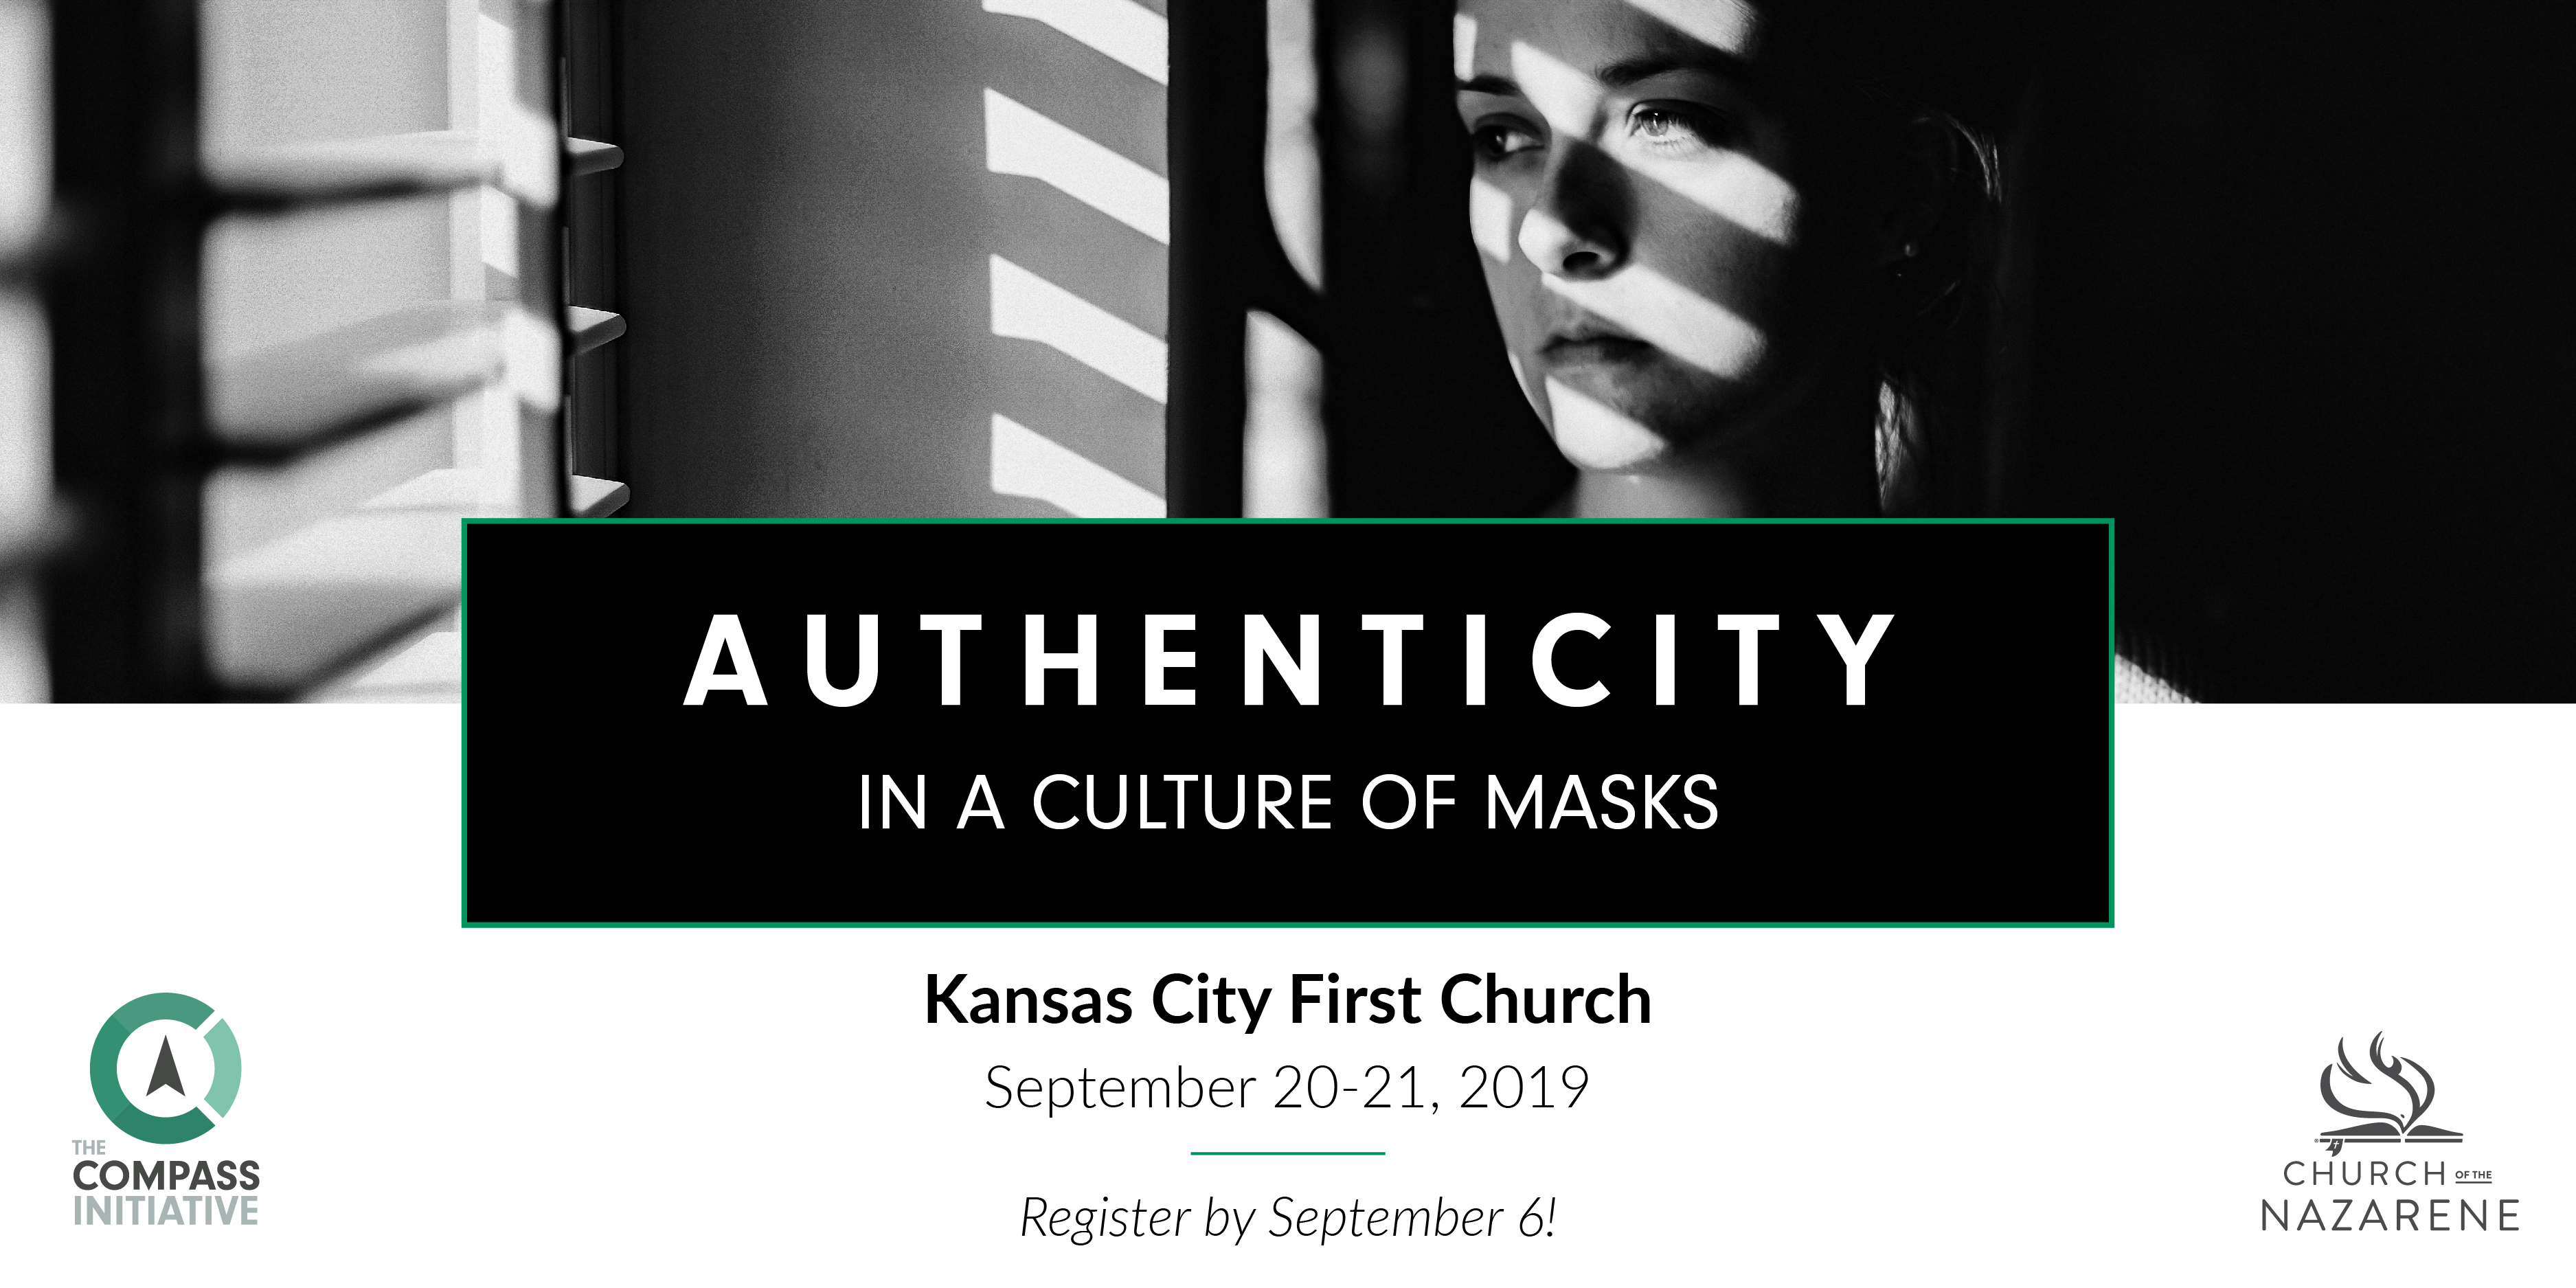 Authenticity in a Culture of Masks